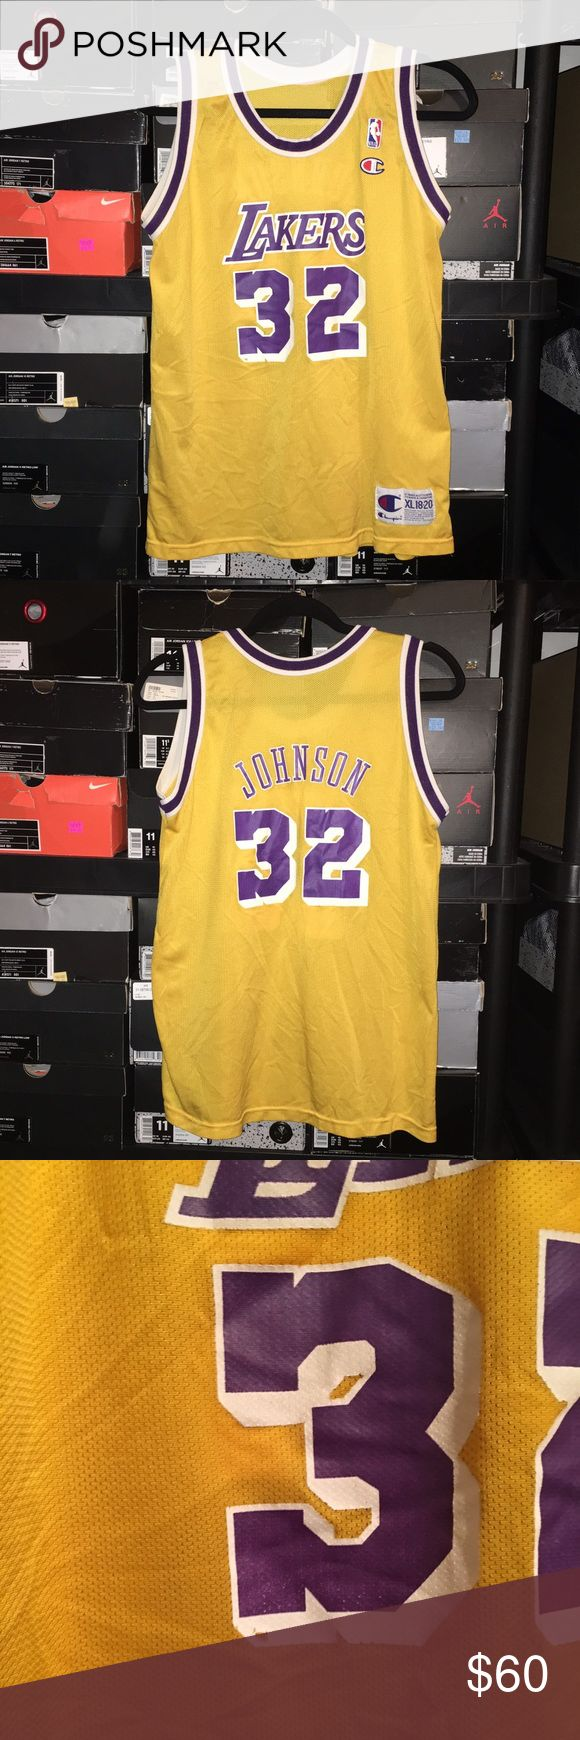 Vintage Champion Lakers Magic Johnson Jersey Vintage Champion Lakers Magic Johnson Jersey Kids XL 18-20. Small imperfection on front noted in 3rd photo. Jersey is in great condition. Champion Shirts & Tops Tank Tops